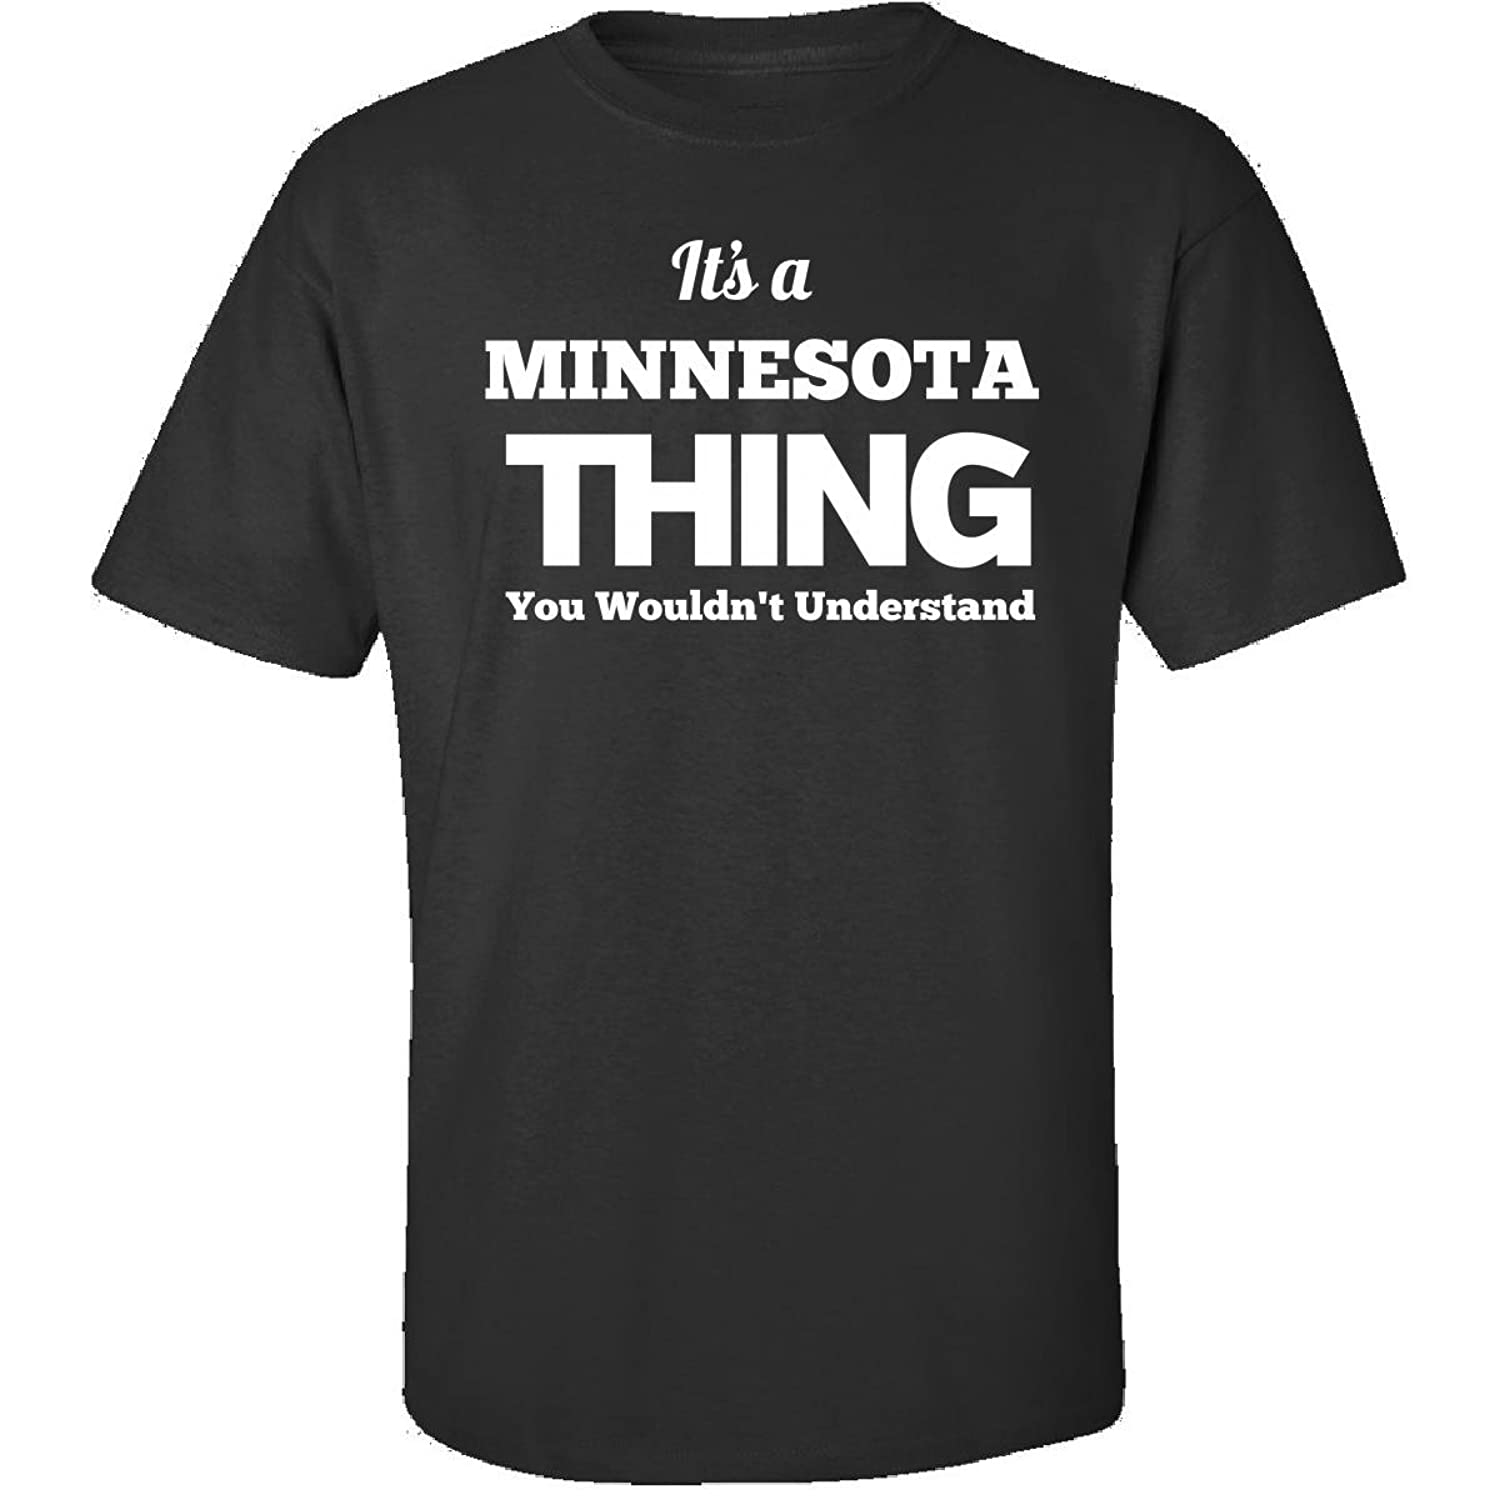 Its A Minnesota Thing You Wouldnt Understand - Adult Shirt